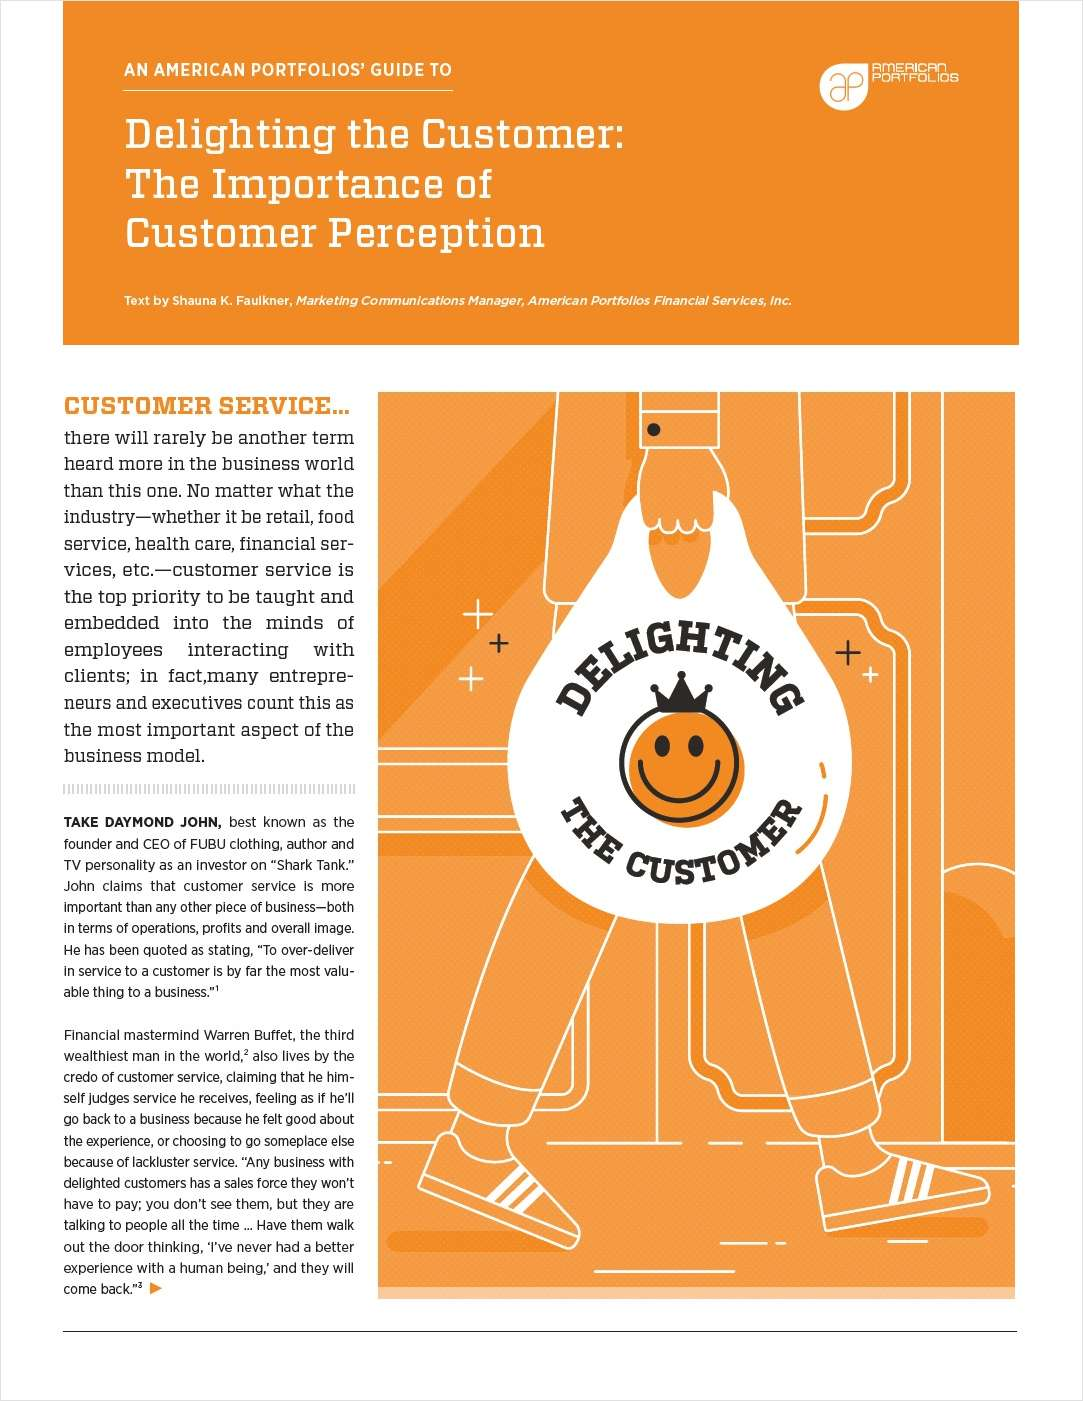 Delighting the Customer: The Importance of Customer Perception